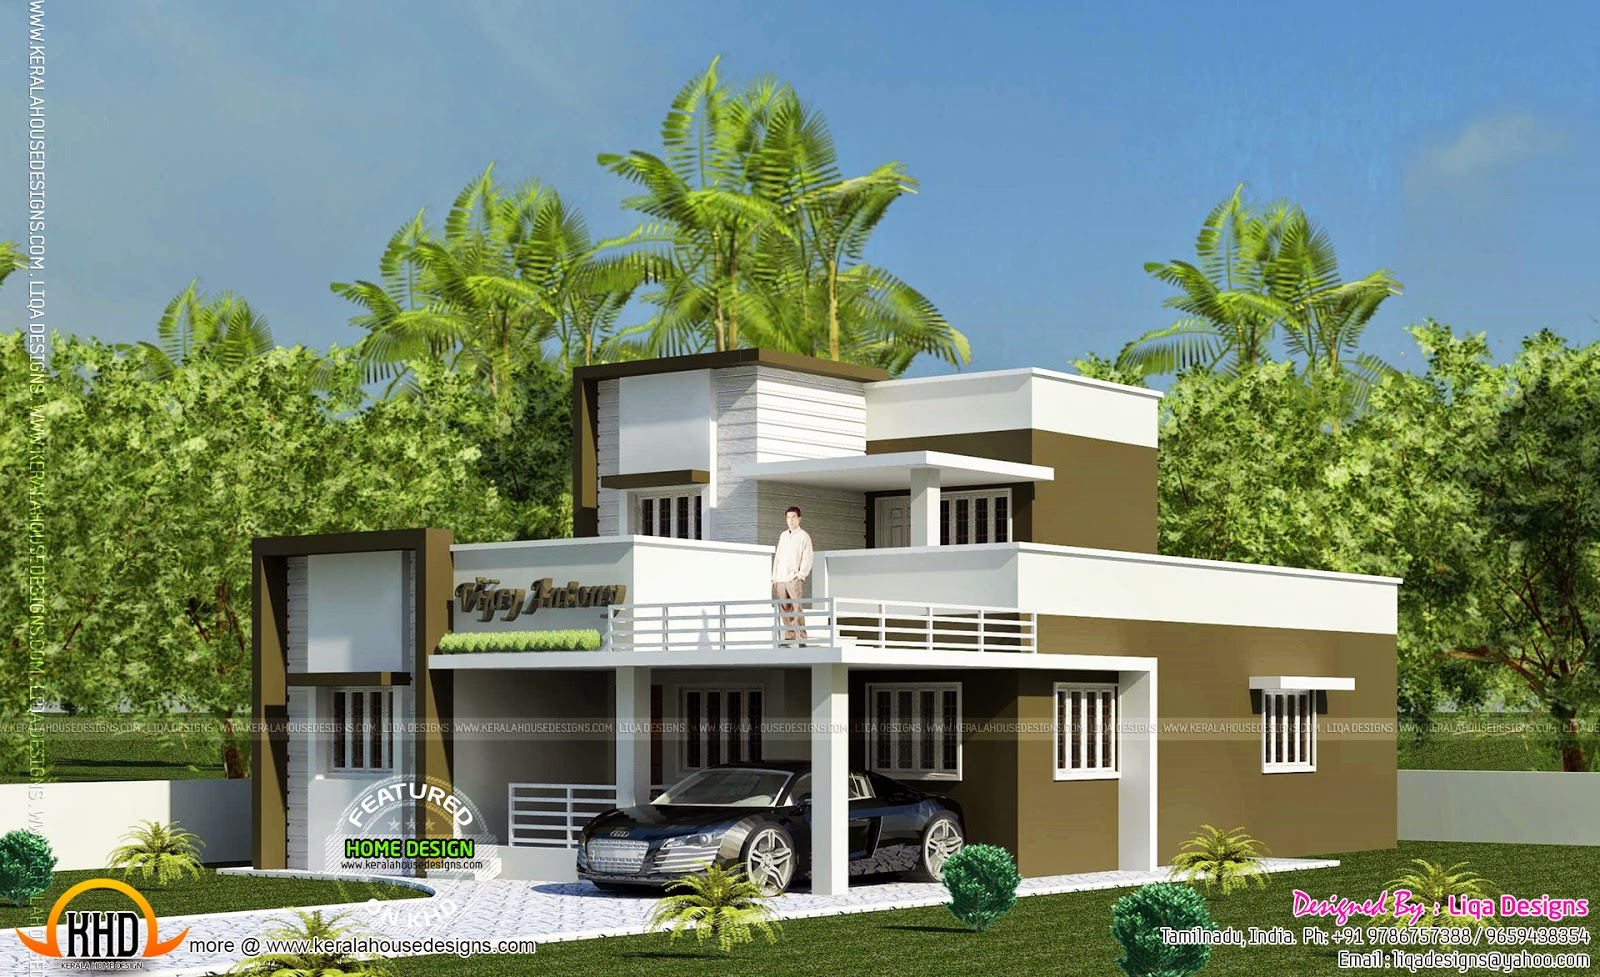 1365 sq ft 2 bedroom small house design kerala home for Bedroom designs tamilnadu